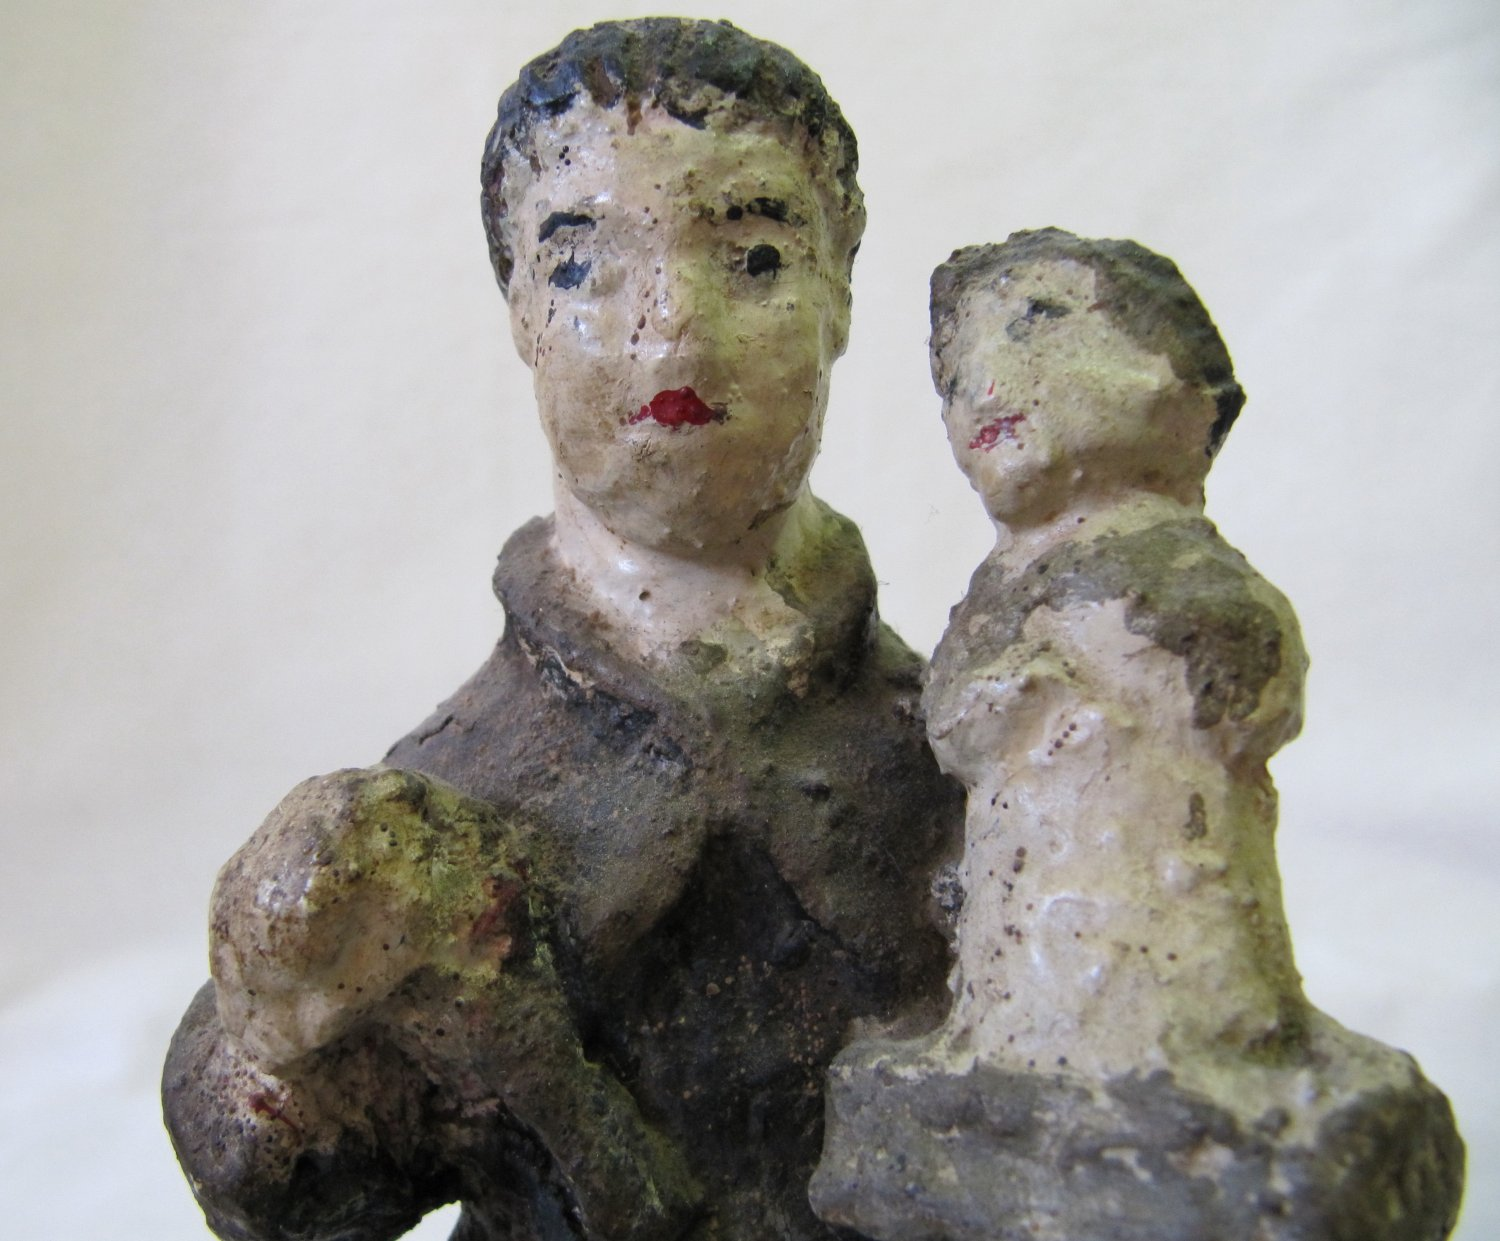 Ceramic Religious Figure Priest Monk with Child South American Antiquity c. 1600s